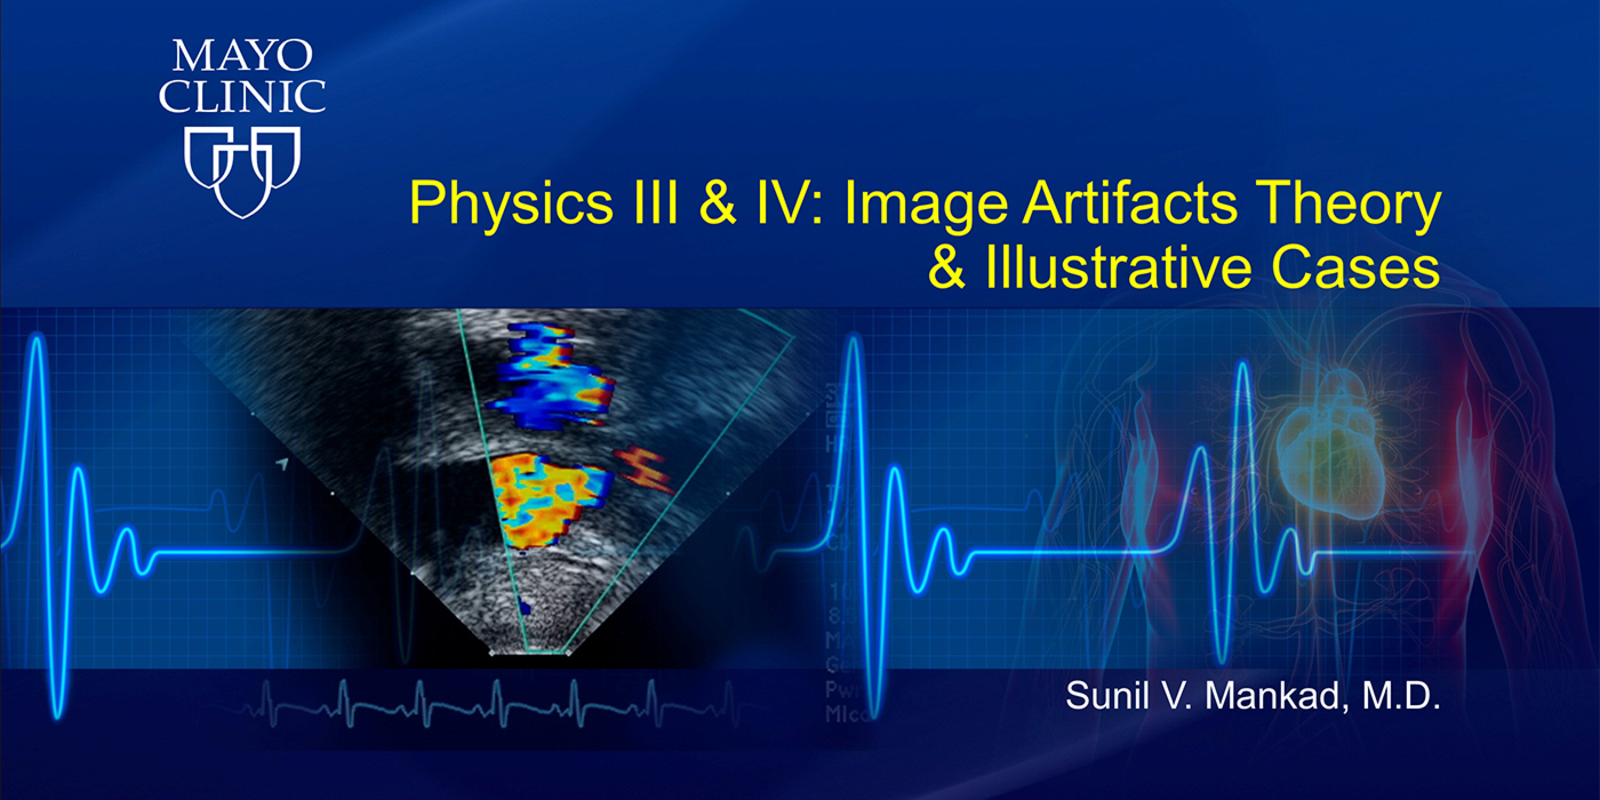 Physics III & IV: Image Artifacts Theory & Illustrative Cases